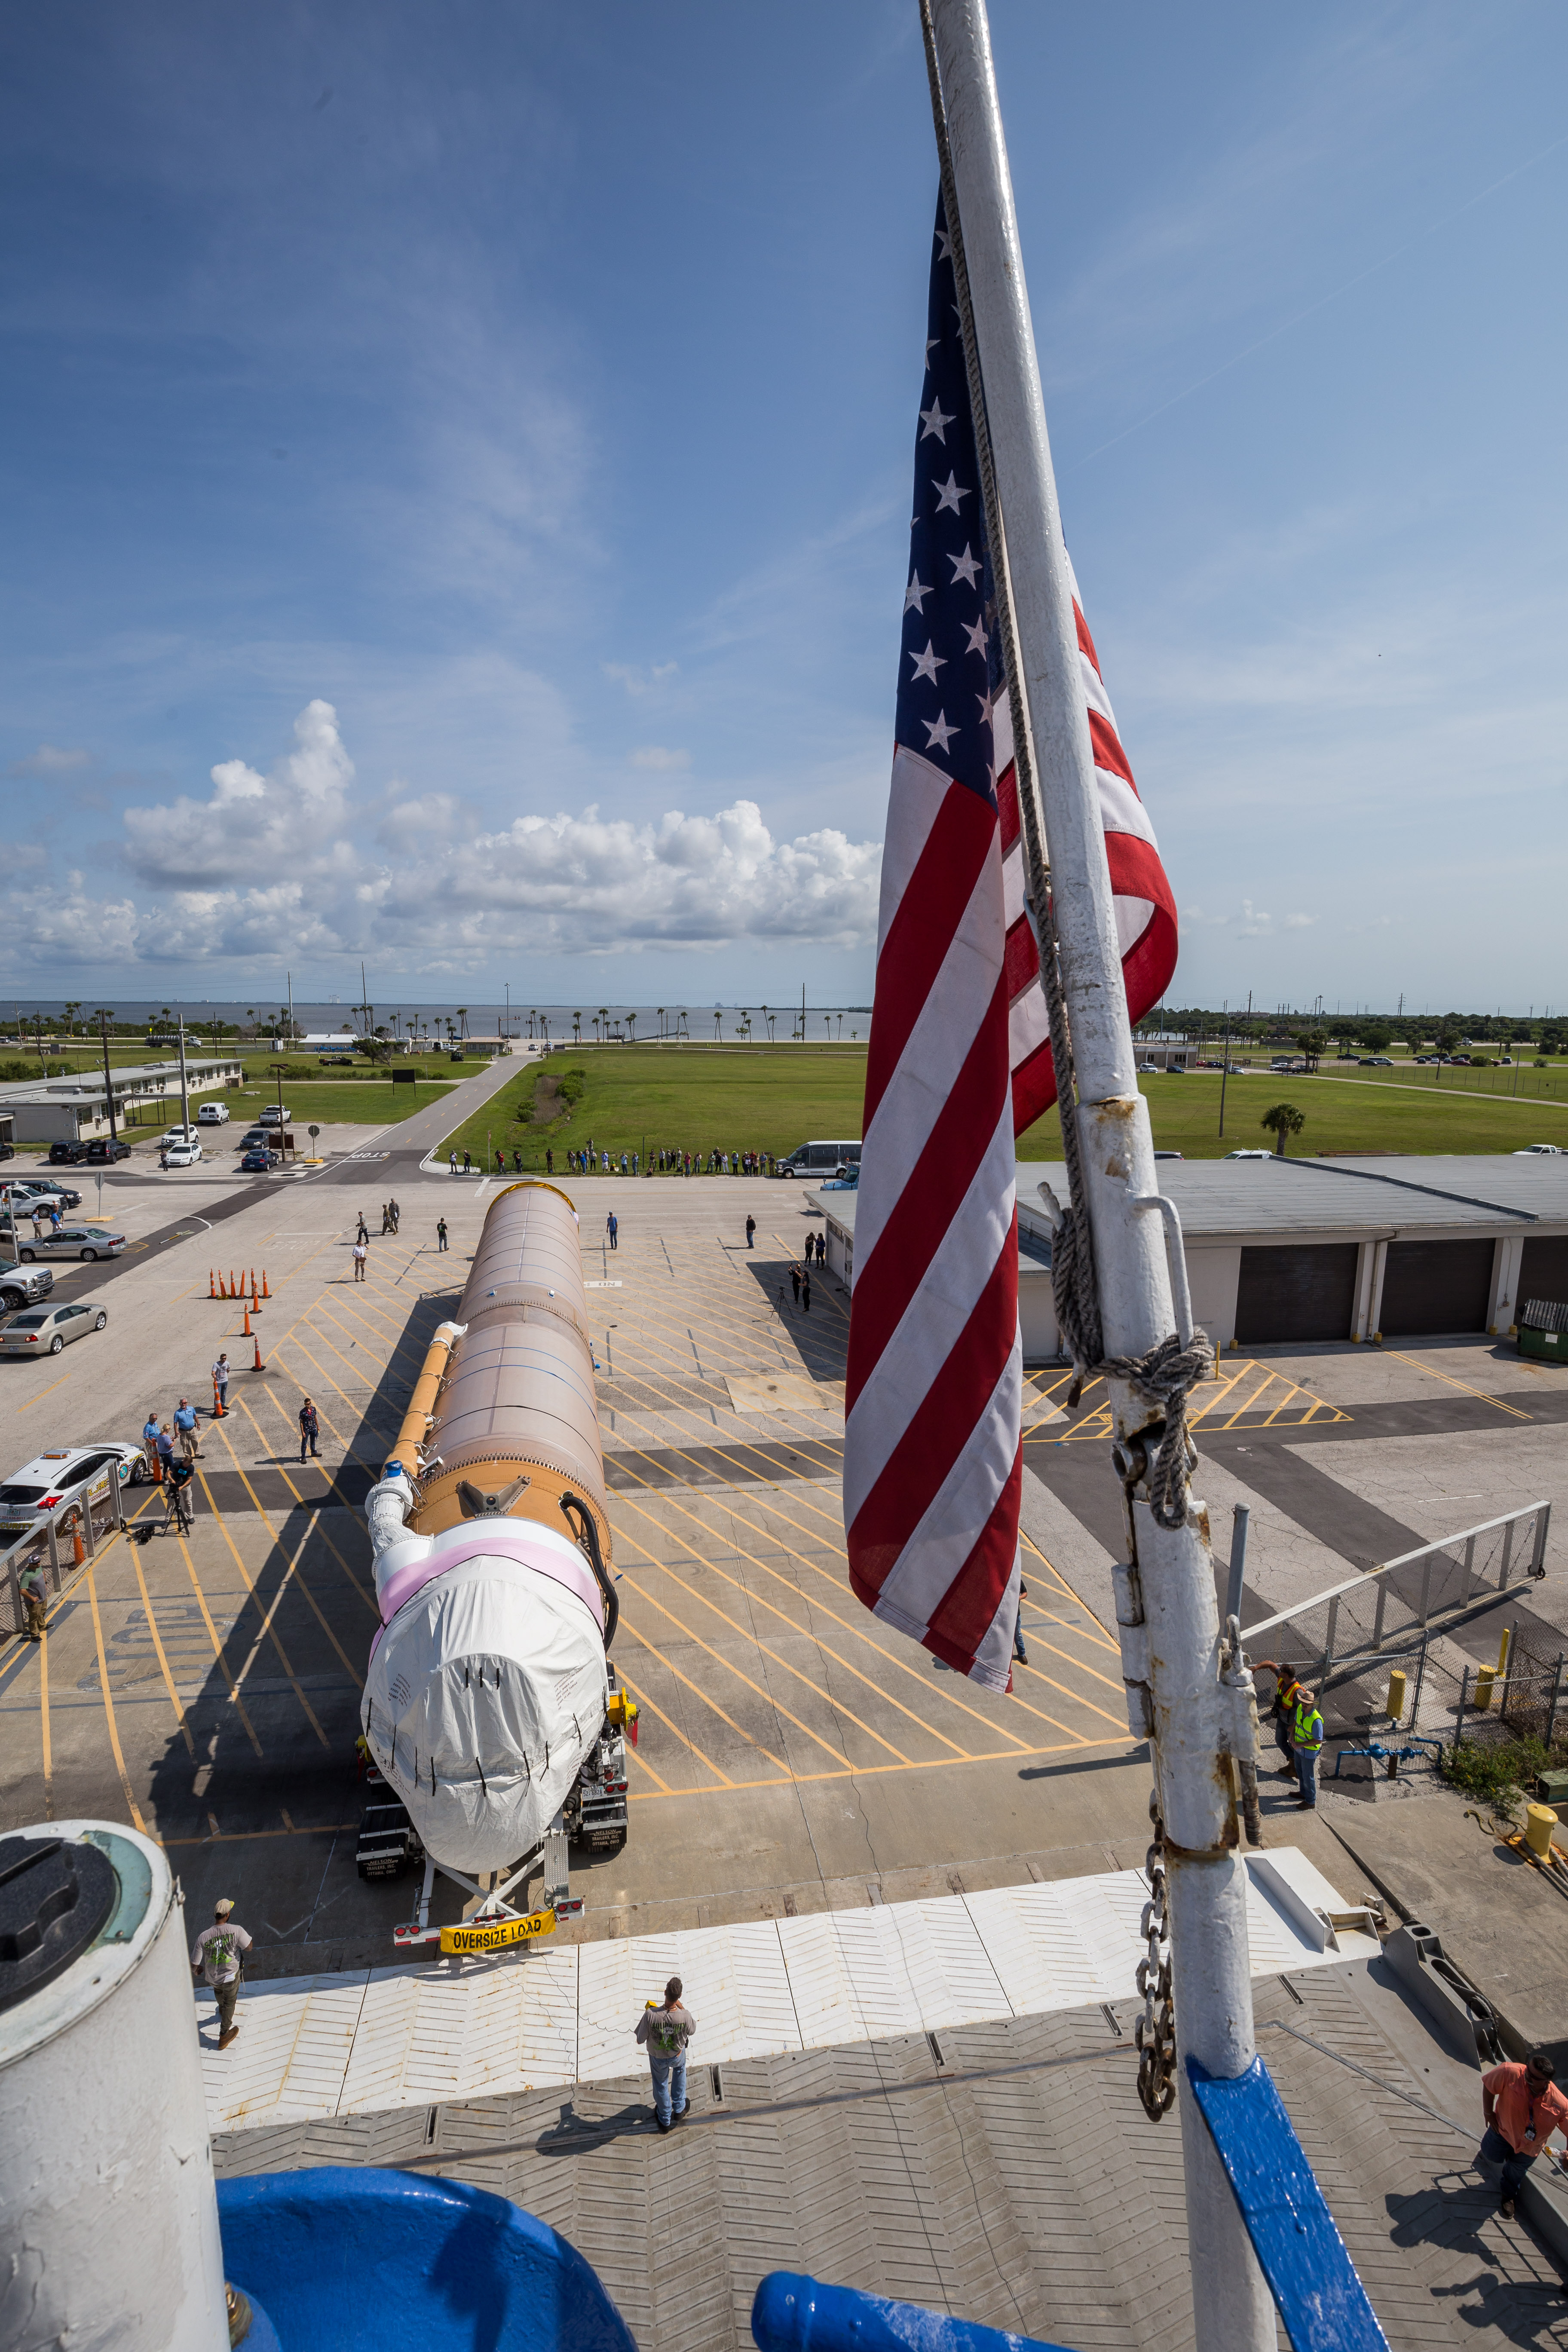 The Atlas first stage for CFT arrives at Cape Canaveral. Photo by ULA